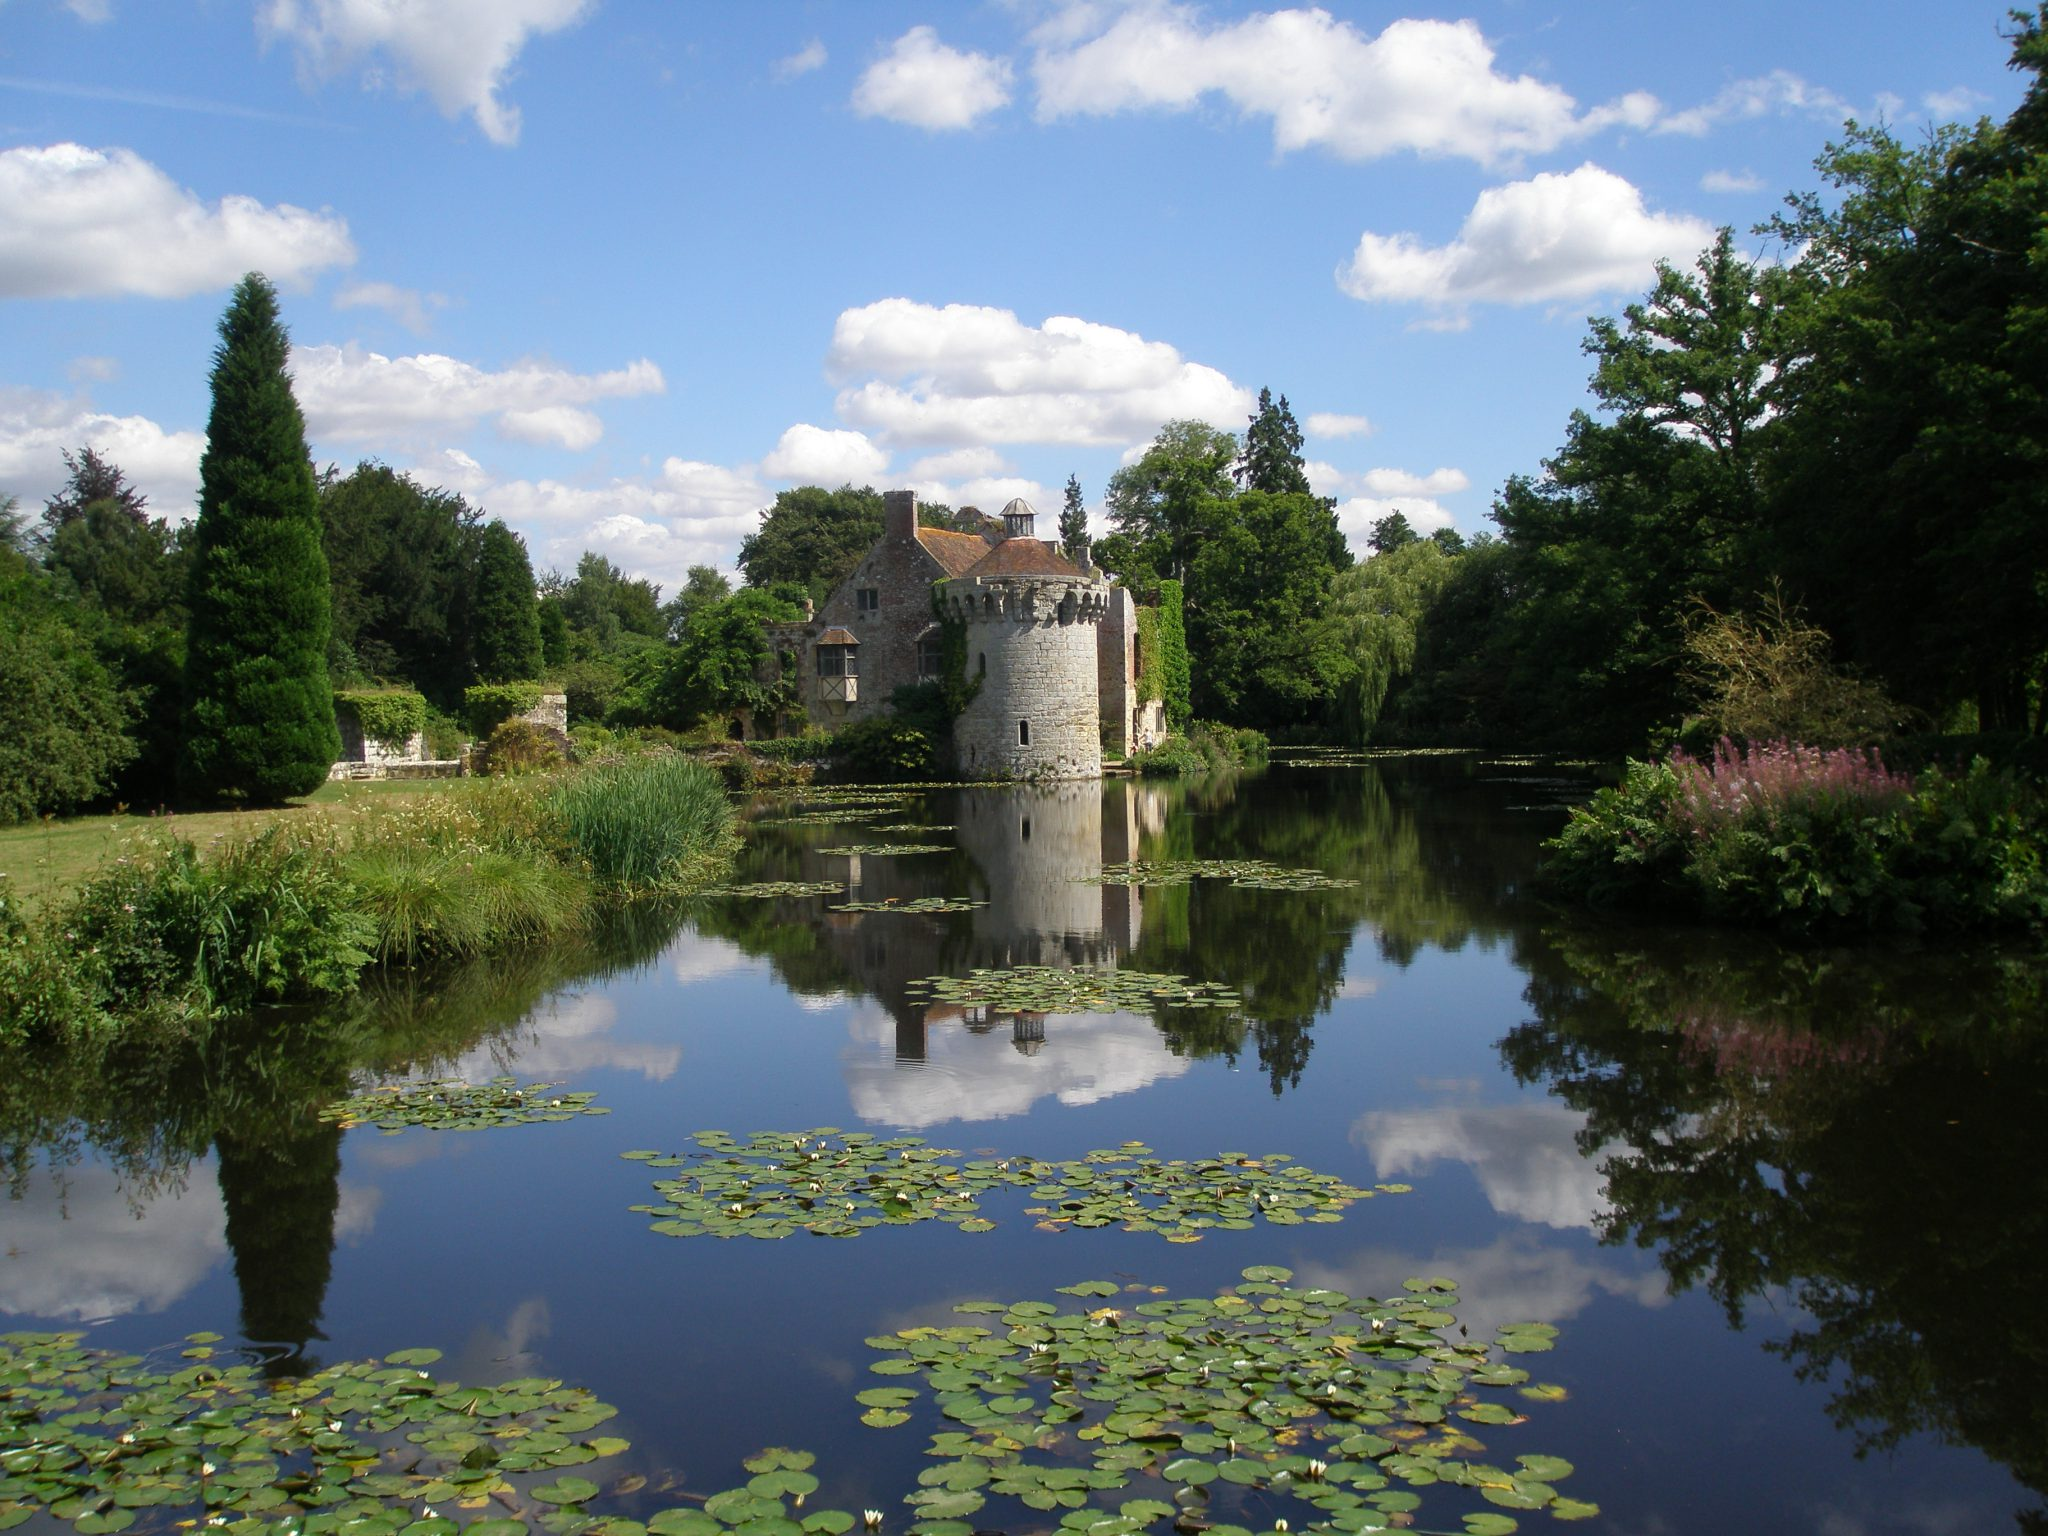 The circular, late 14th century tower at Scotney Castle, near Royal Tunbridge Wells, in Kent, England. I took this photo on August 6, 2013.""